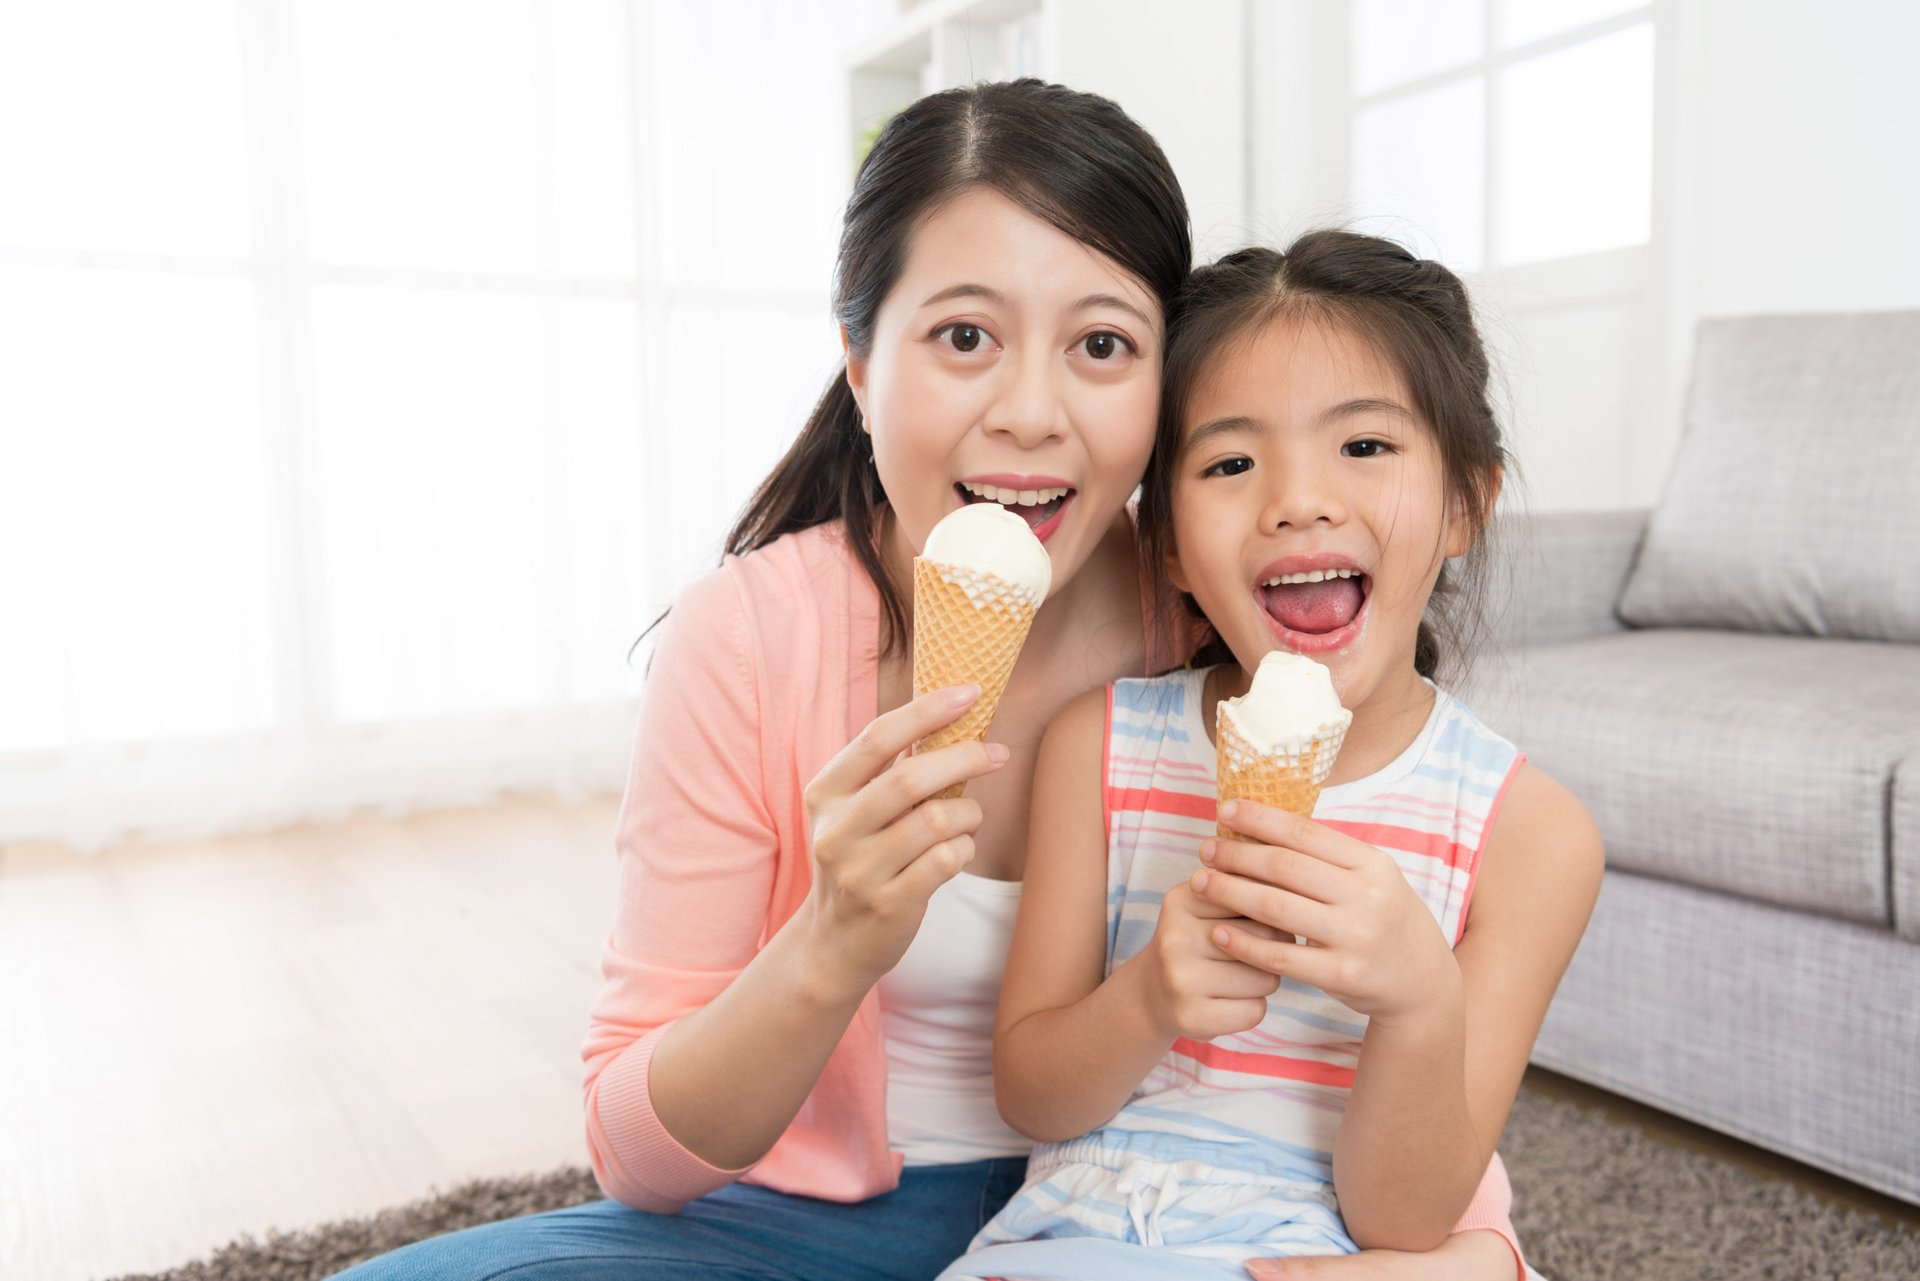 A mother and daughter eat homemade ice cream